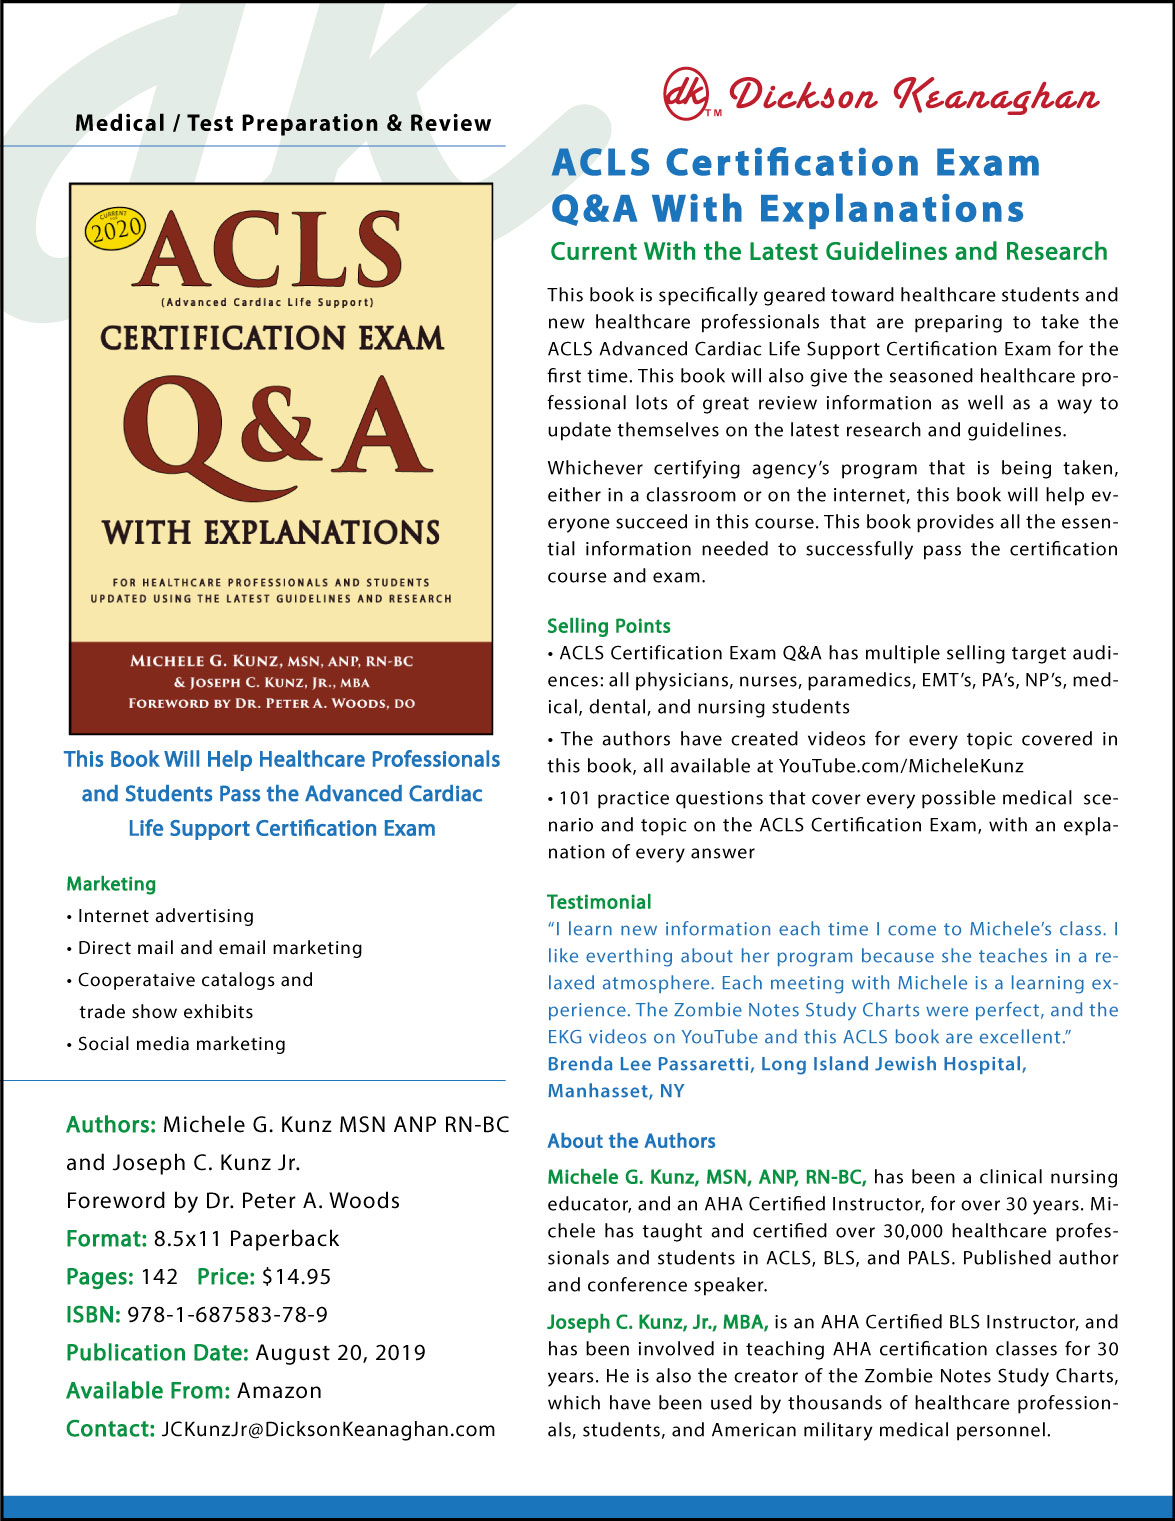 ACLS Certification Exam Q&A With Explanations sell sheet